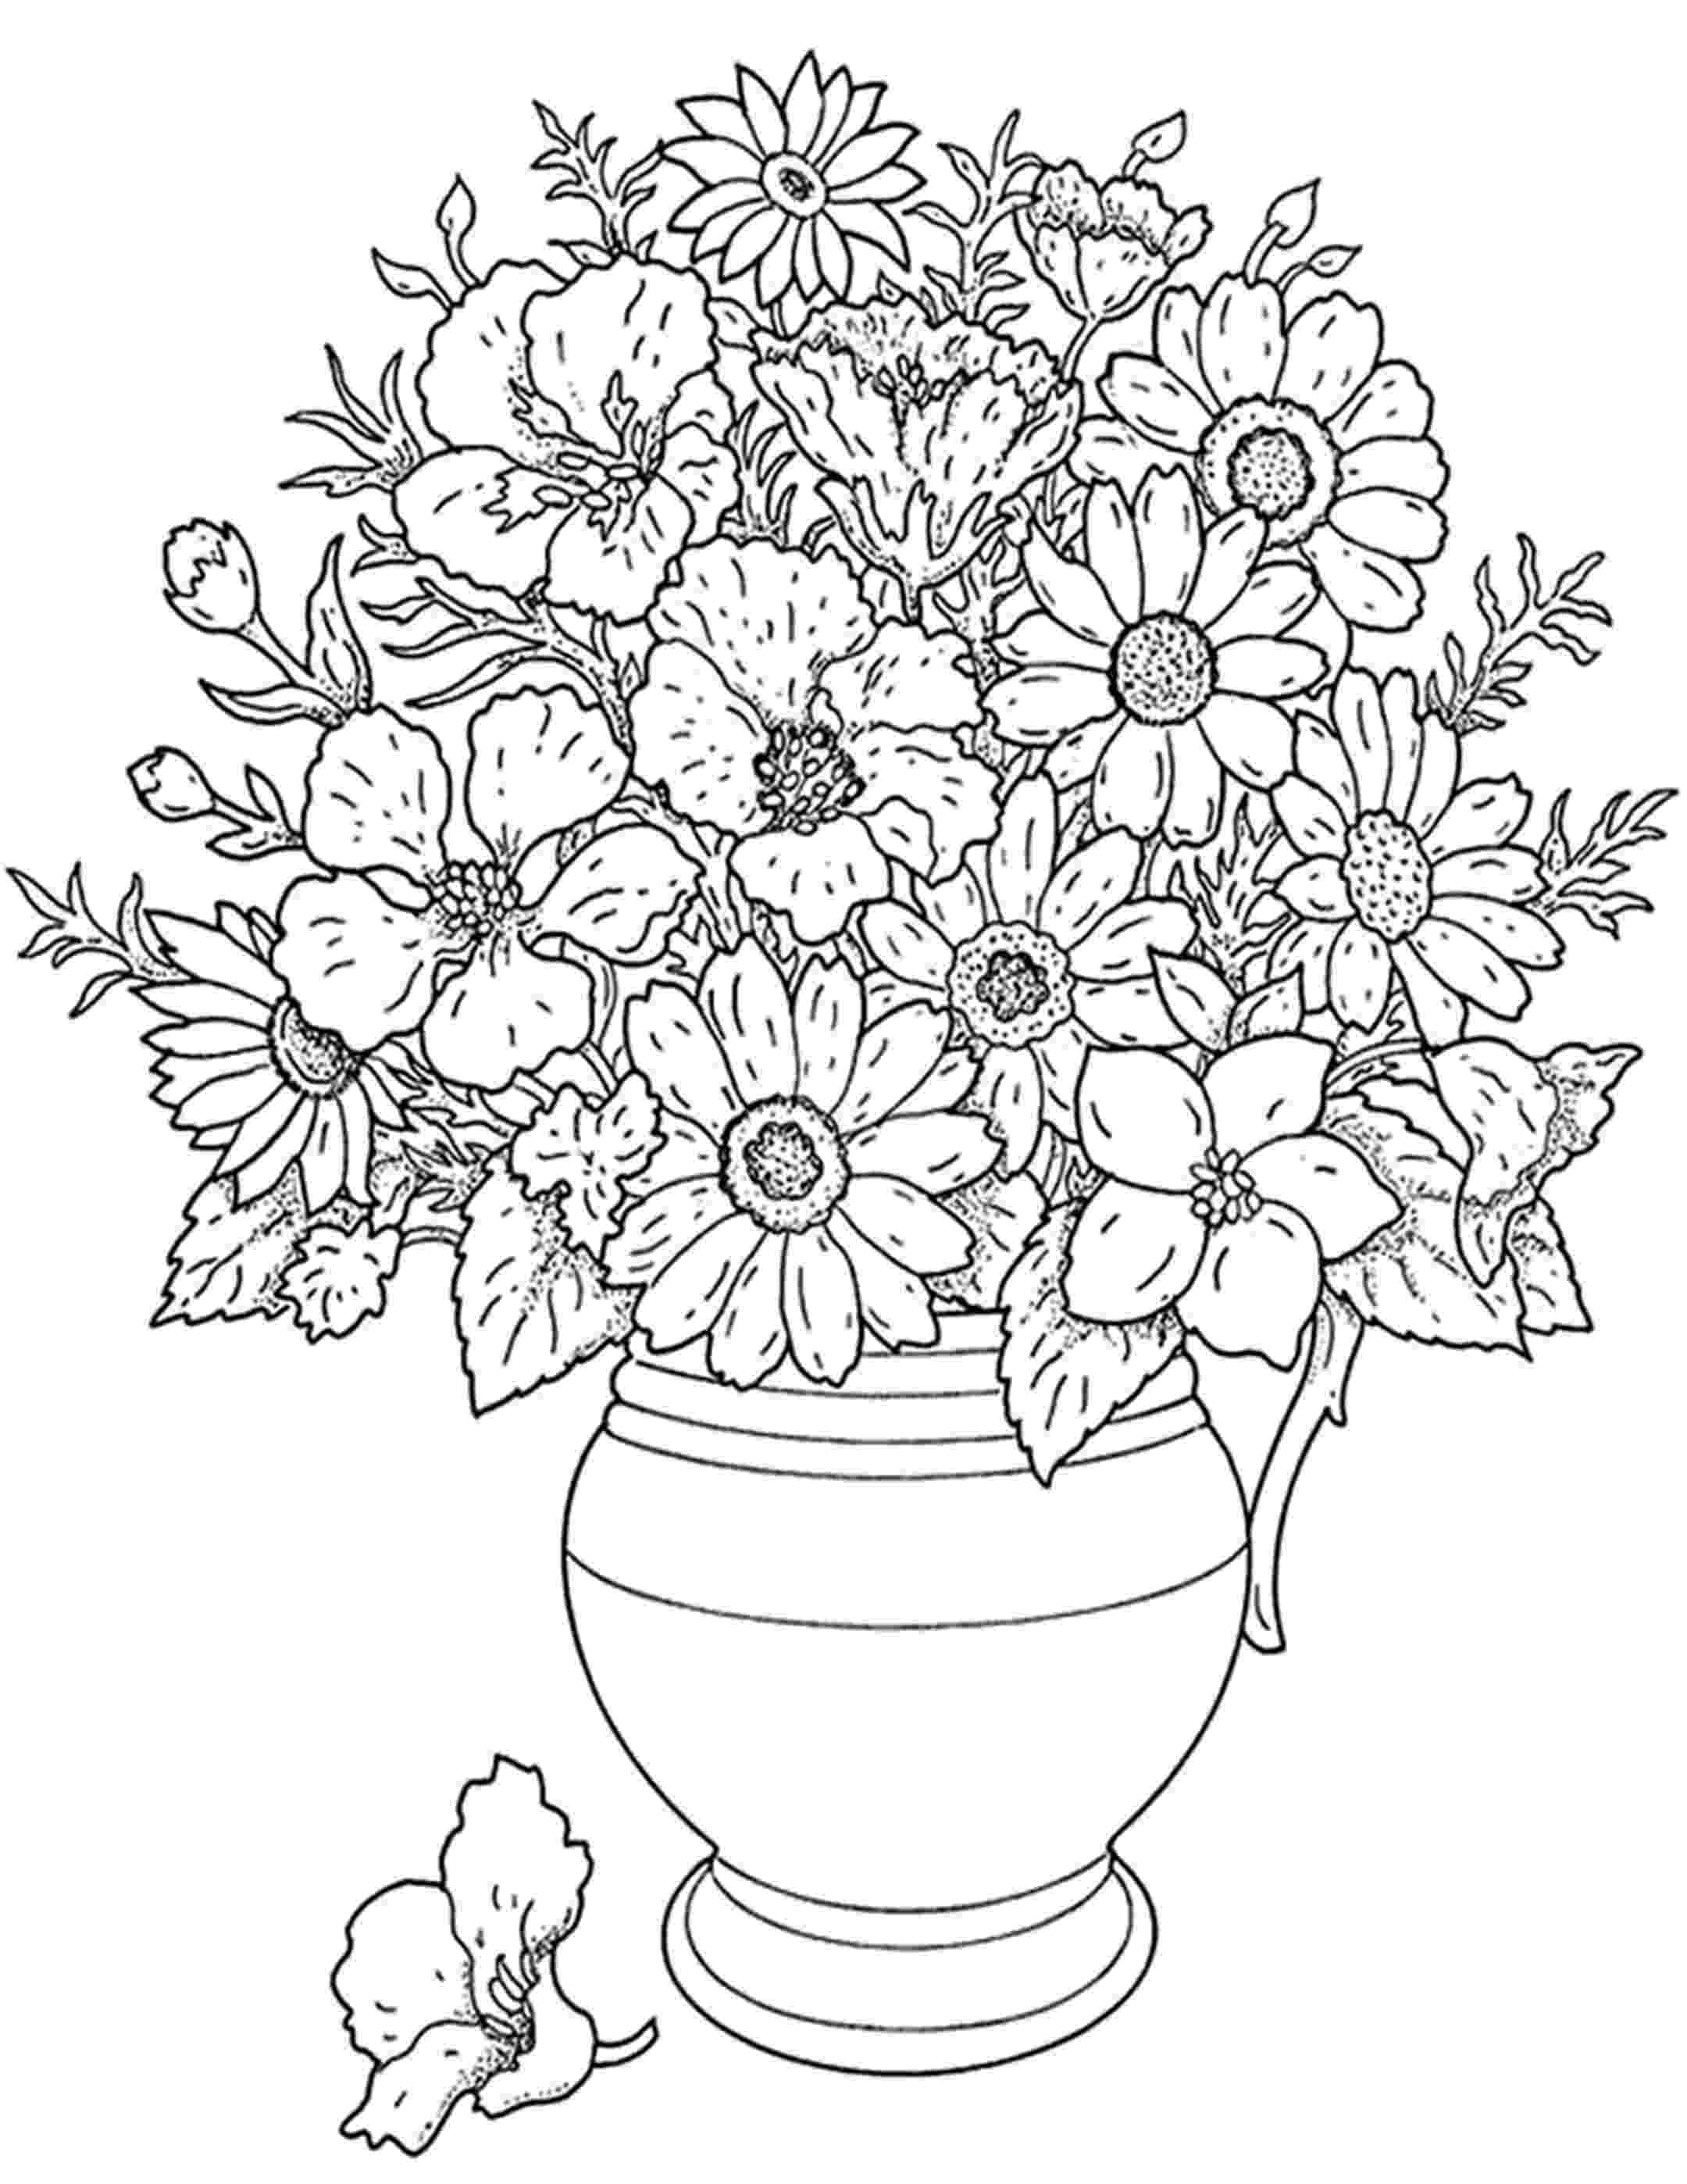 flowers colouring free printable flower coloring pages for kids best flowers colouring 1 1